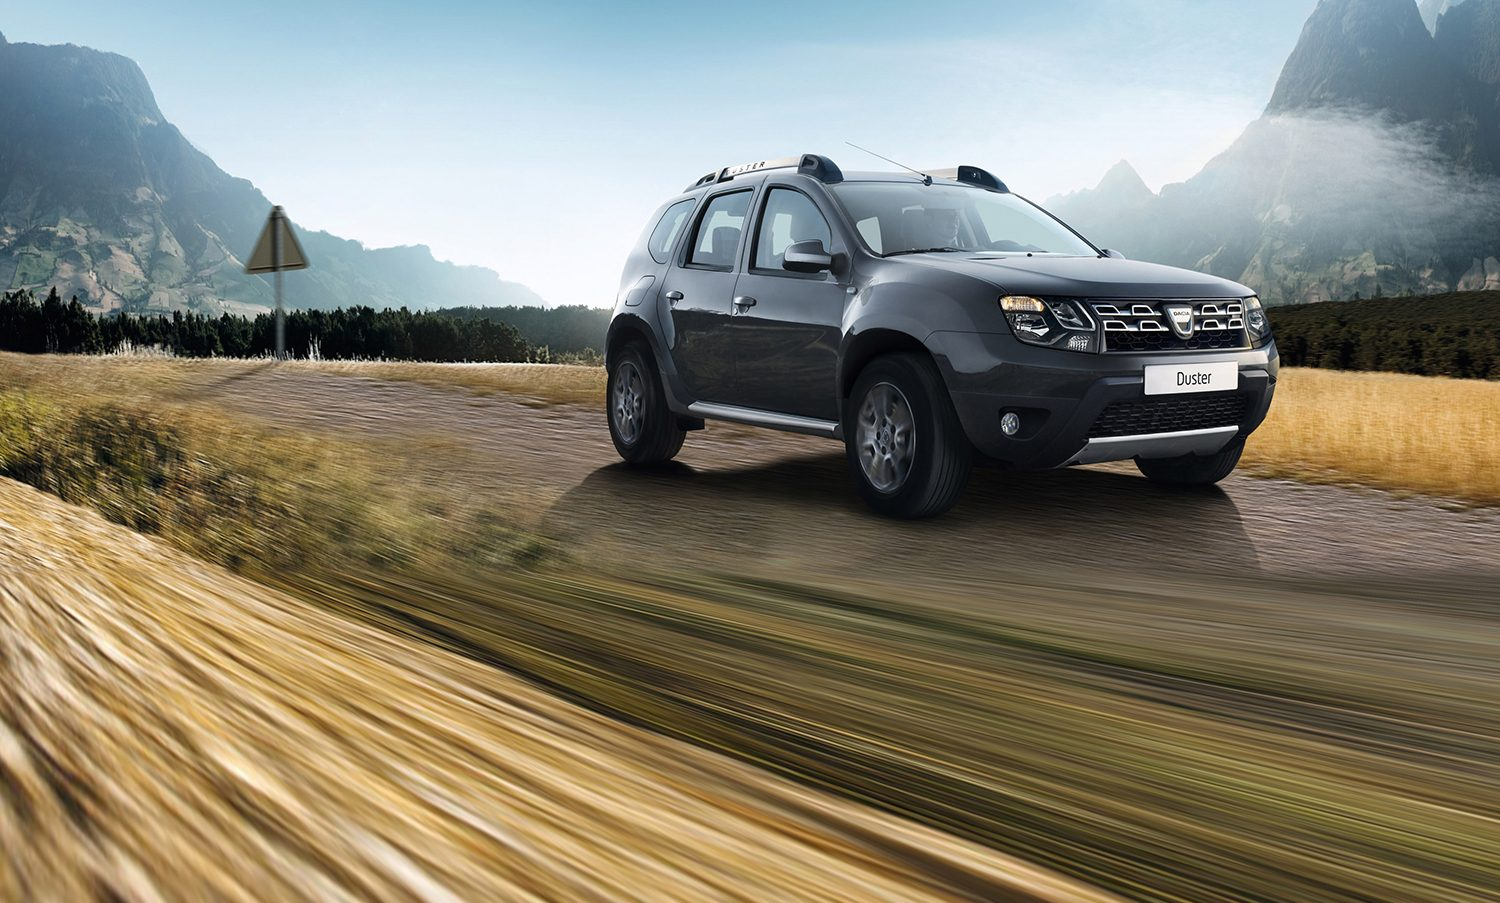 tr-dacia-duster-hero-desktop.2.jpg.ximg.l_full_m.smart.jpg